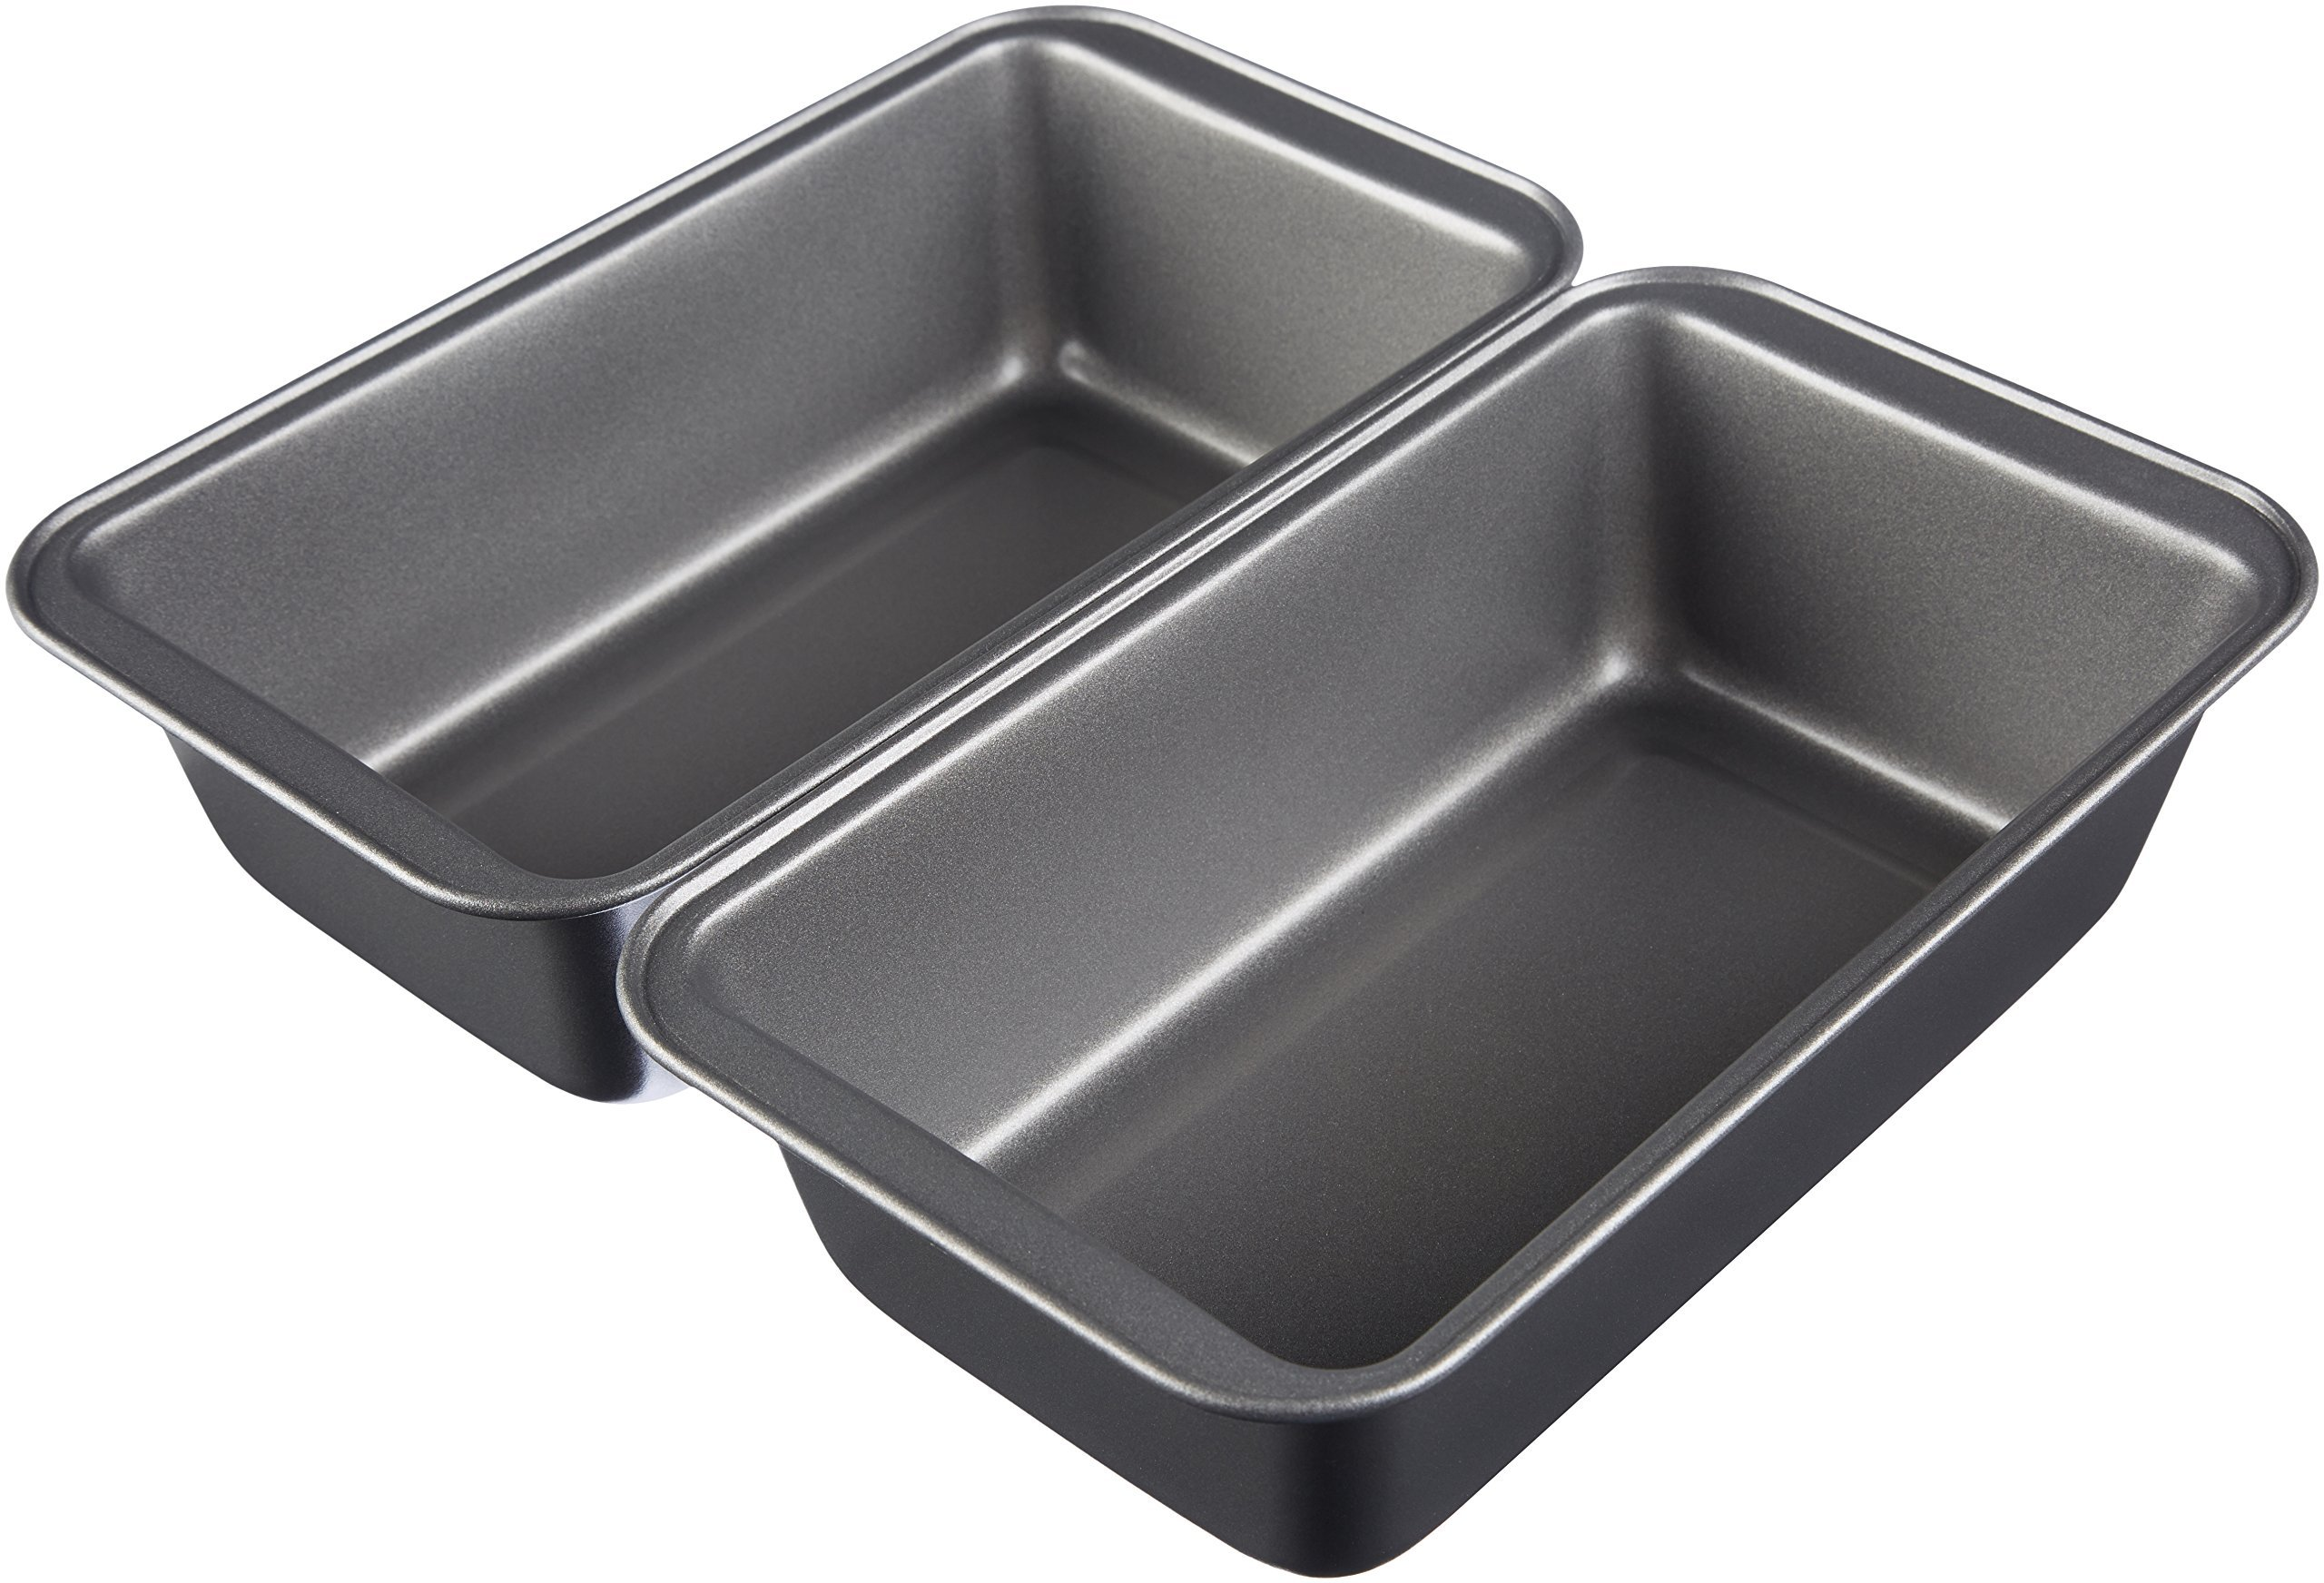 AmazonBasics Nonstick Carbon Steel Bread Pan - 9.5'' x 5'', 2-Pack by AmazonBasics (Image #1)